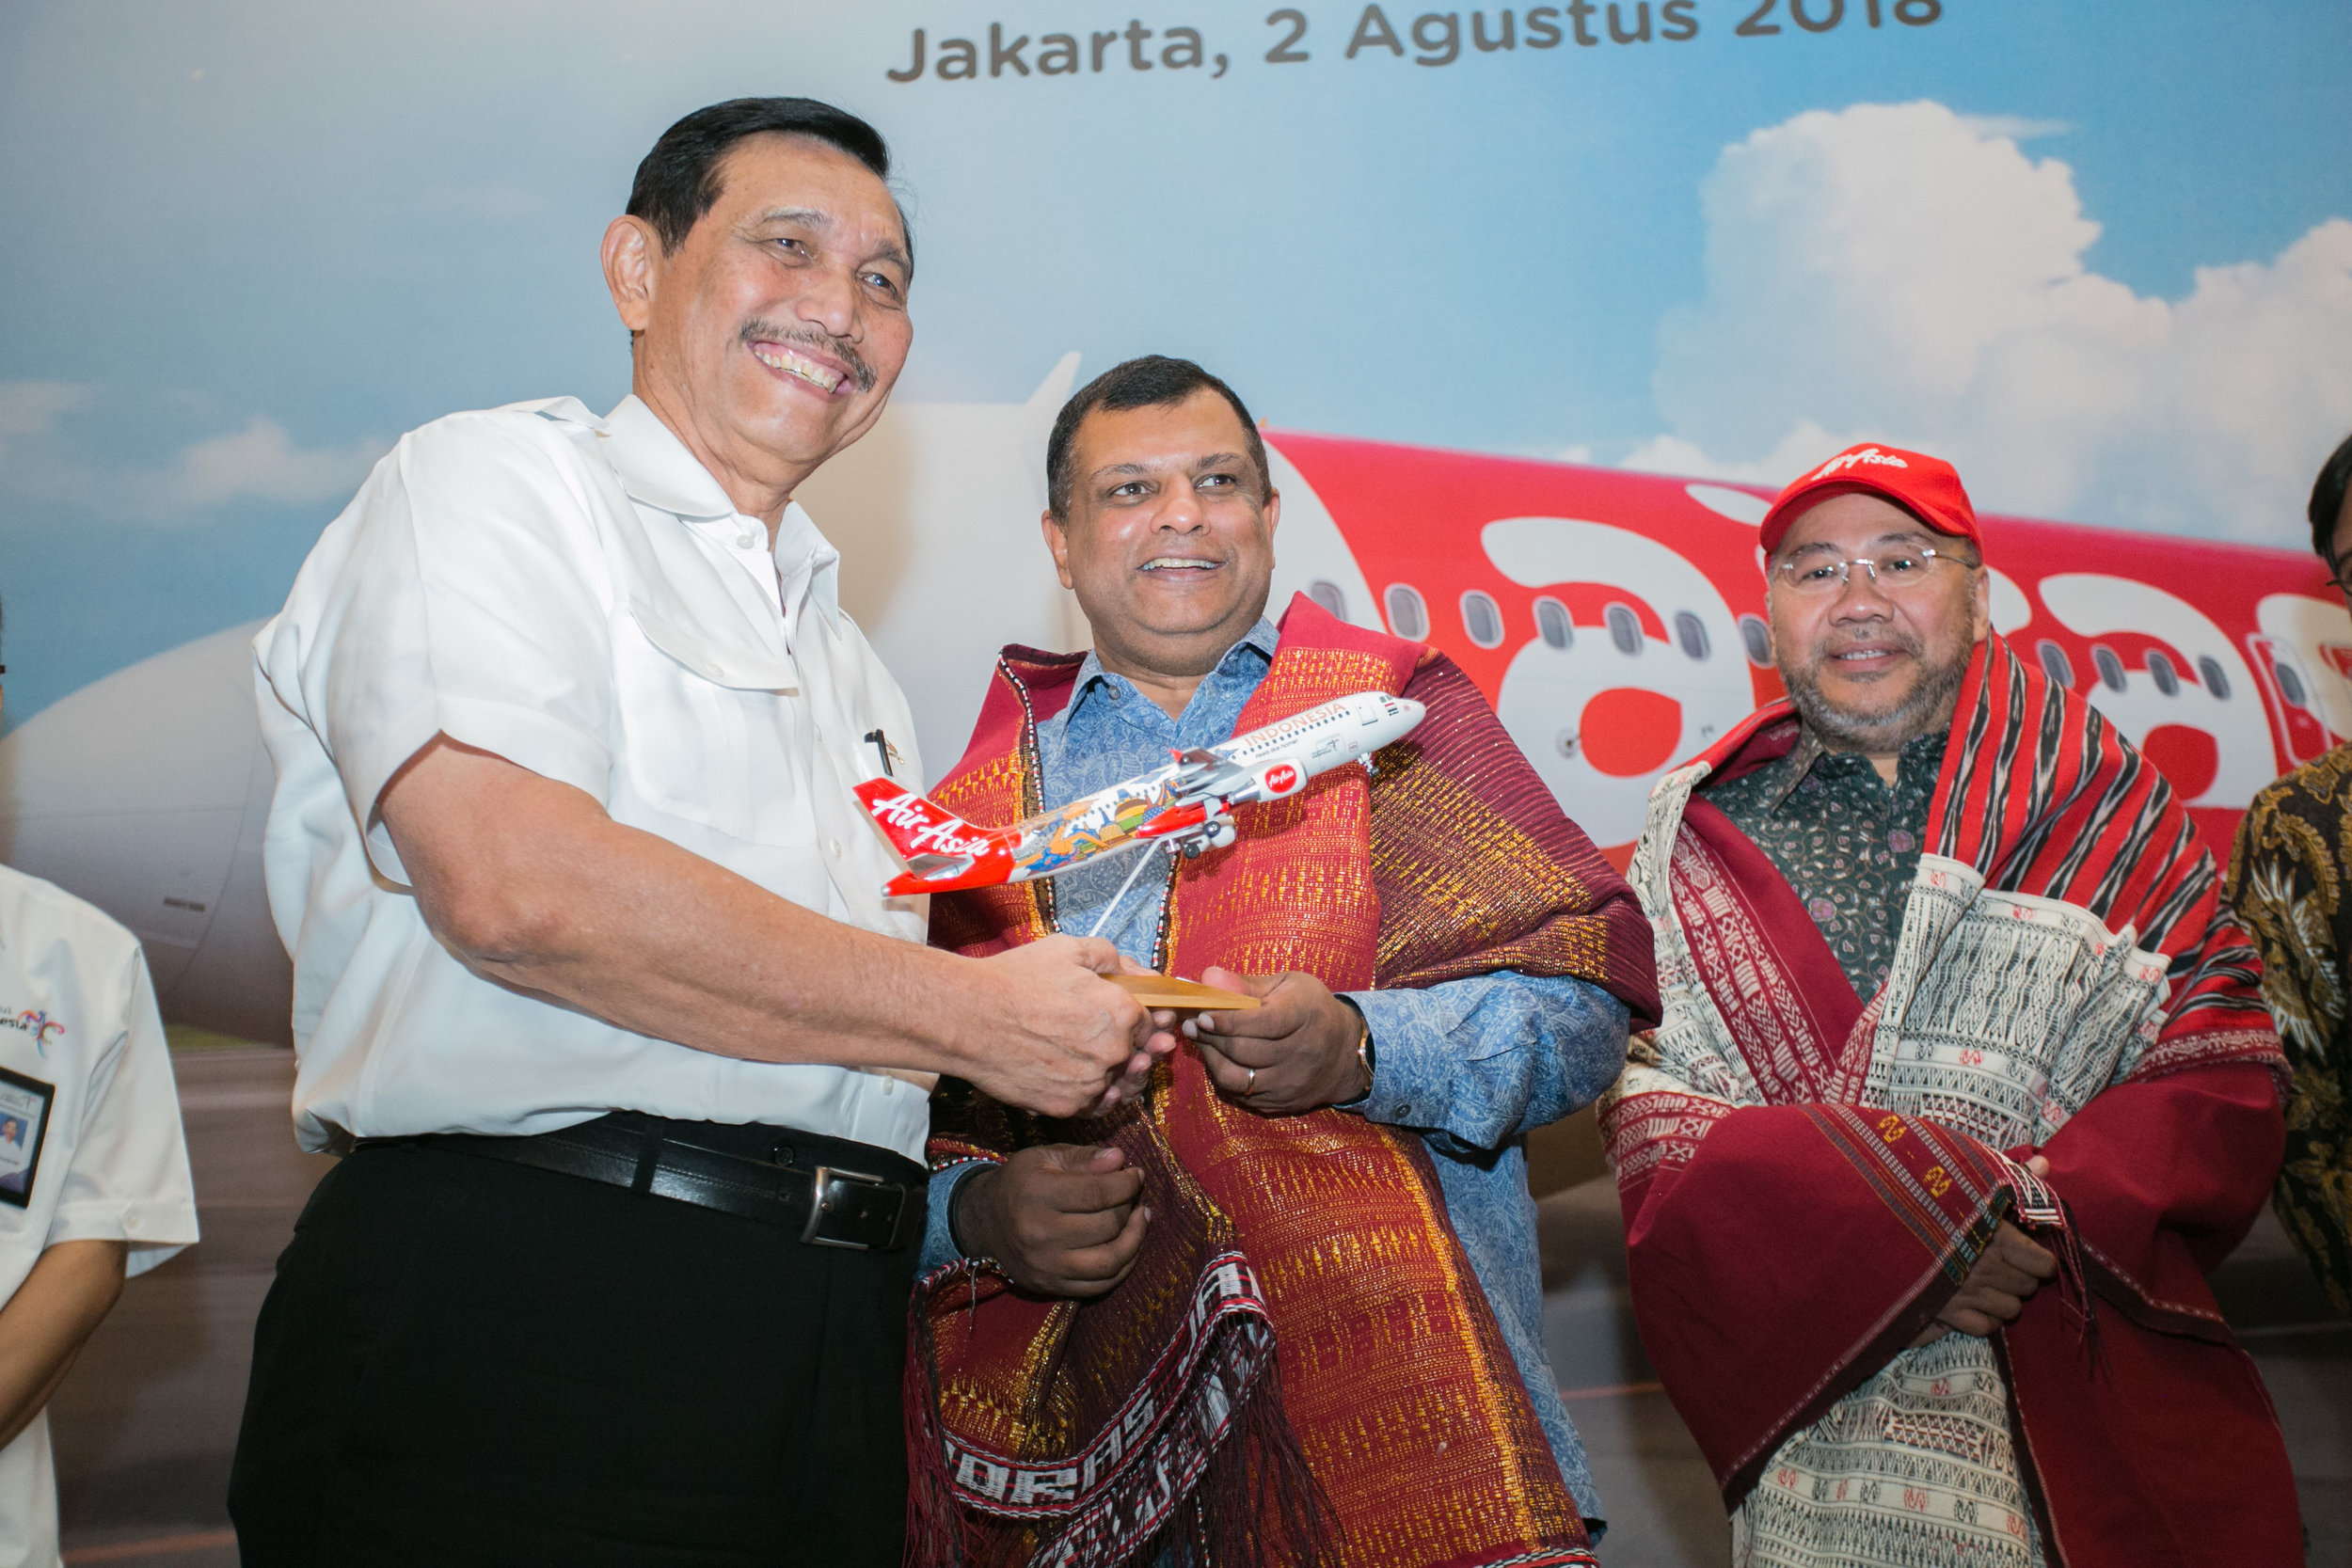 Photo caption:  (From Left) Luhut Binsar Pandjaitan, Coordinating Minister for Maritime Affairs  Indonesia,  Tan Sri Tony Fernandes, AirAsia Group CEO and Datuk Kamarudin Meranun, AirAsia Group Berhad Executive Chairman and AirAsia X Co-Group CEO at the launch of AirAsia's new route from Kuala Lumpur - Silangit- Lake Toba.